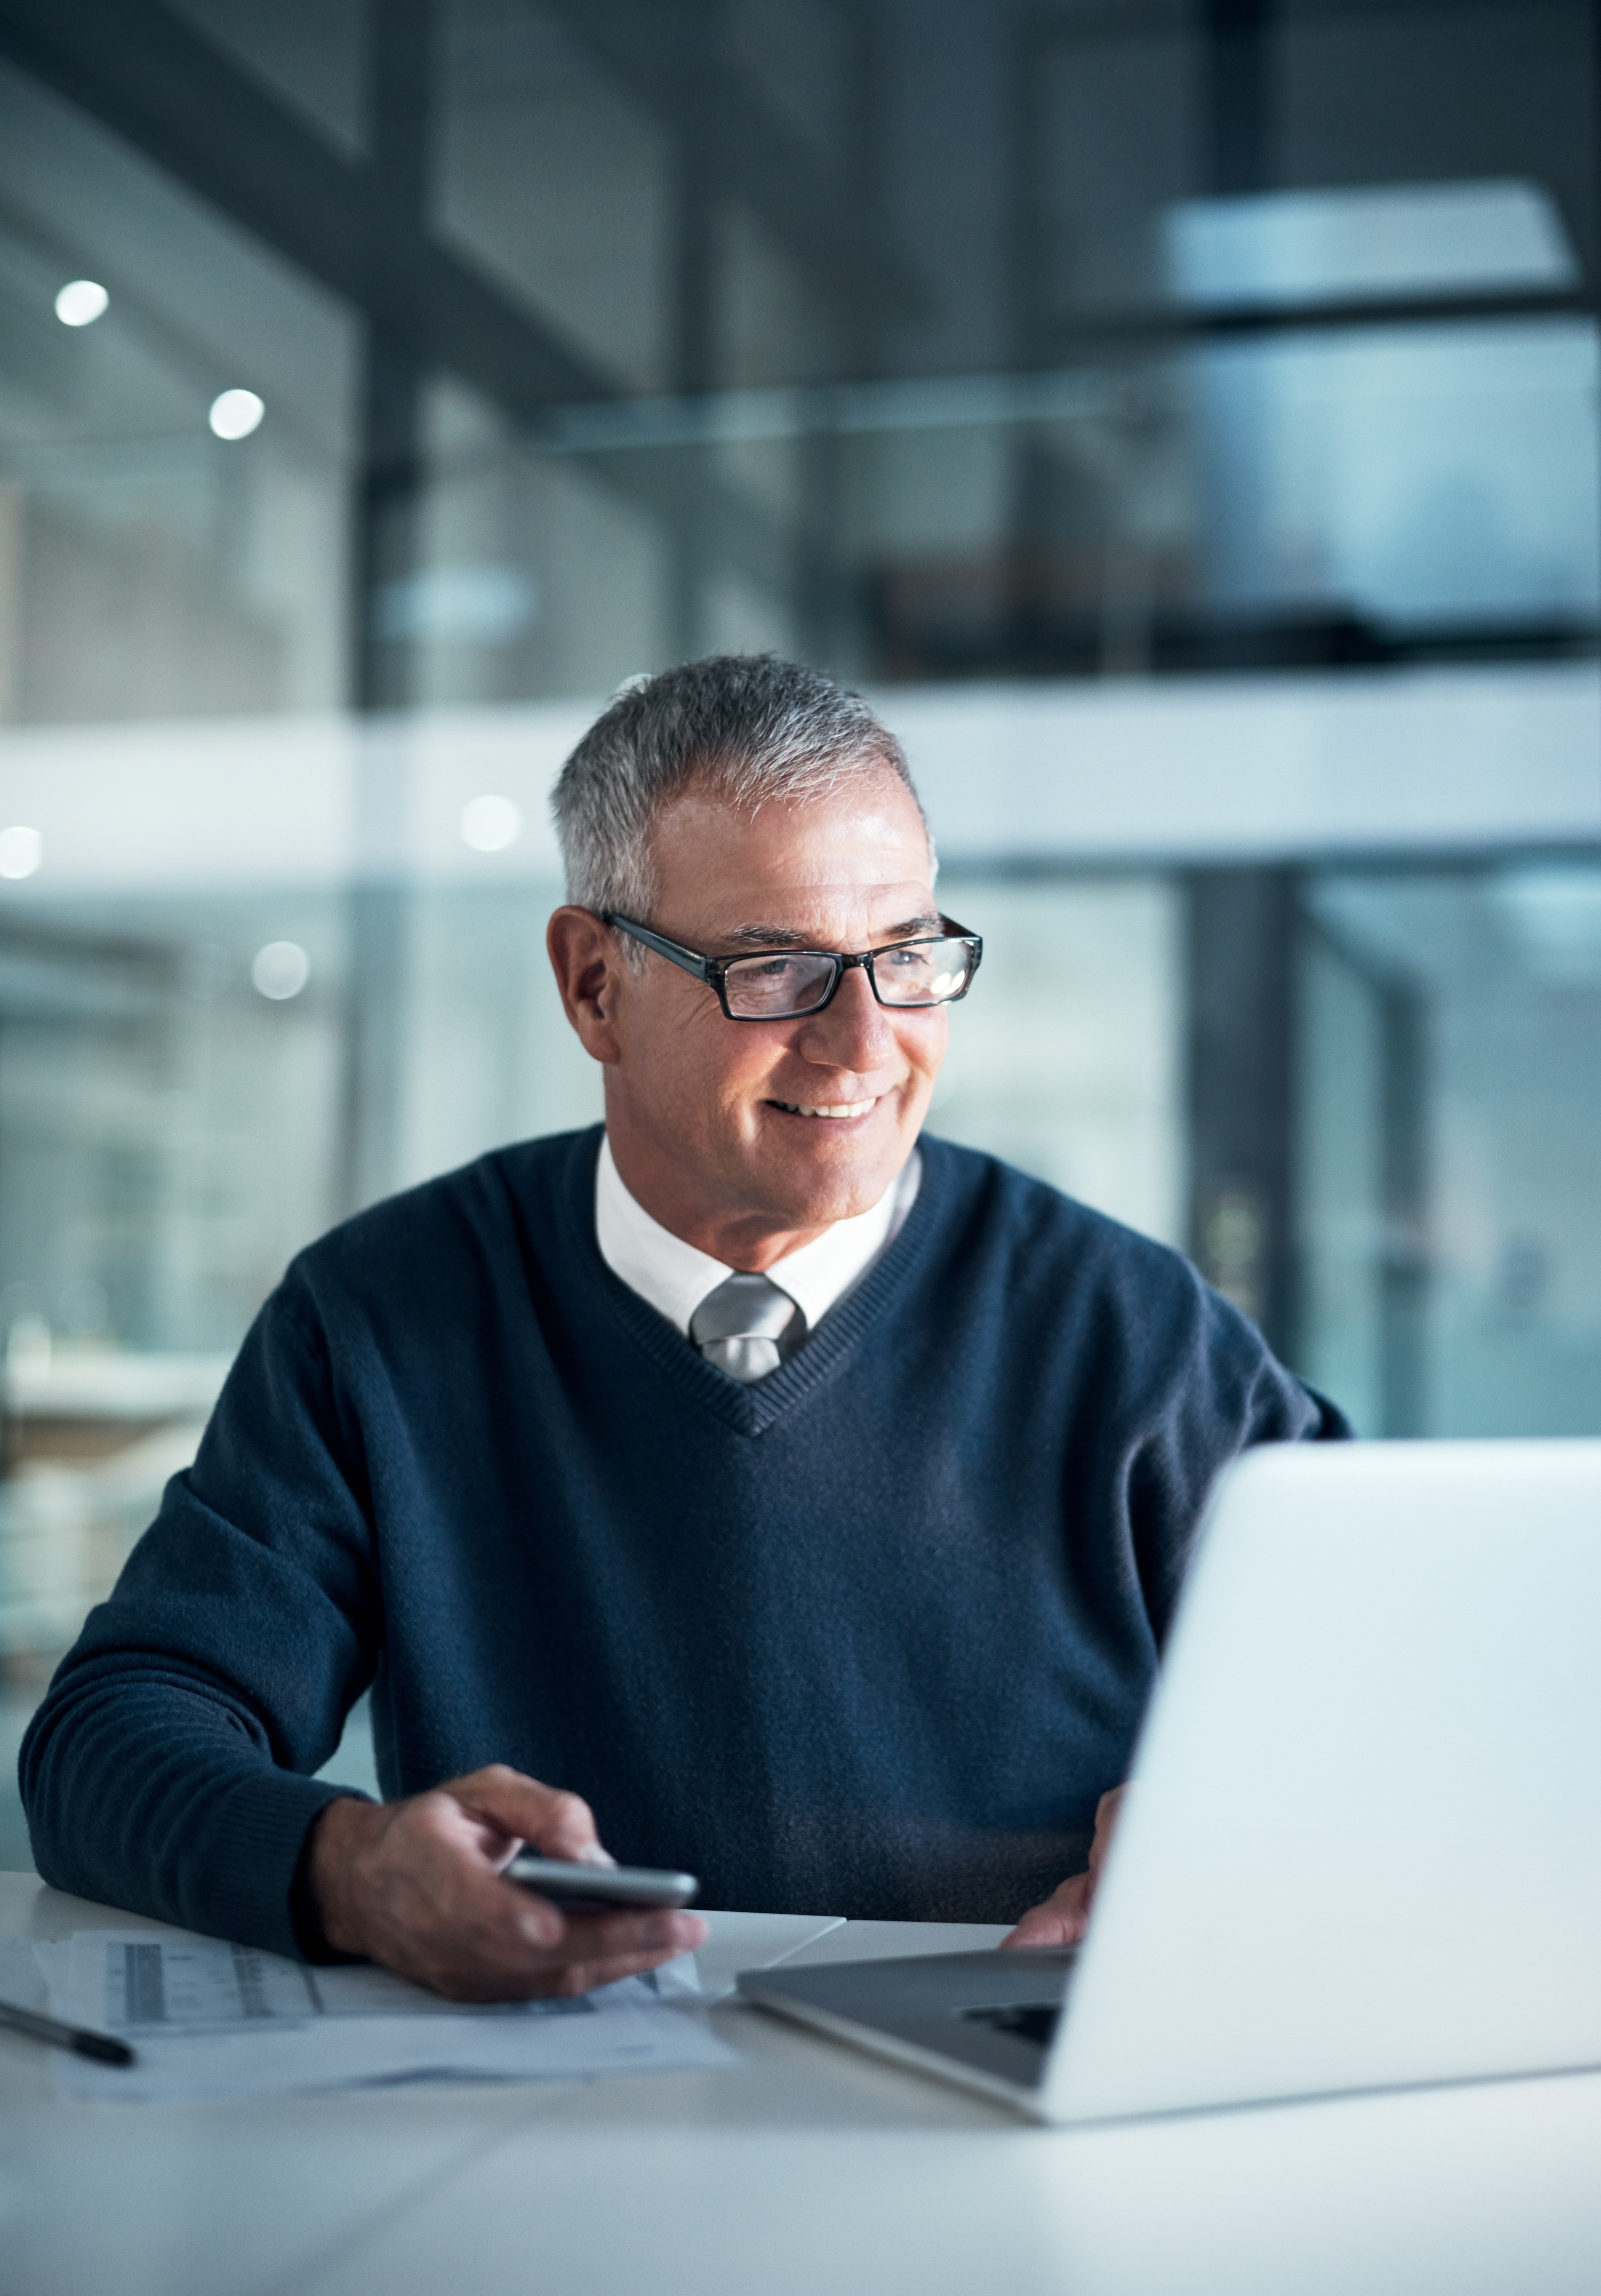 Employee using mobile device and laptop